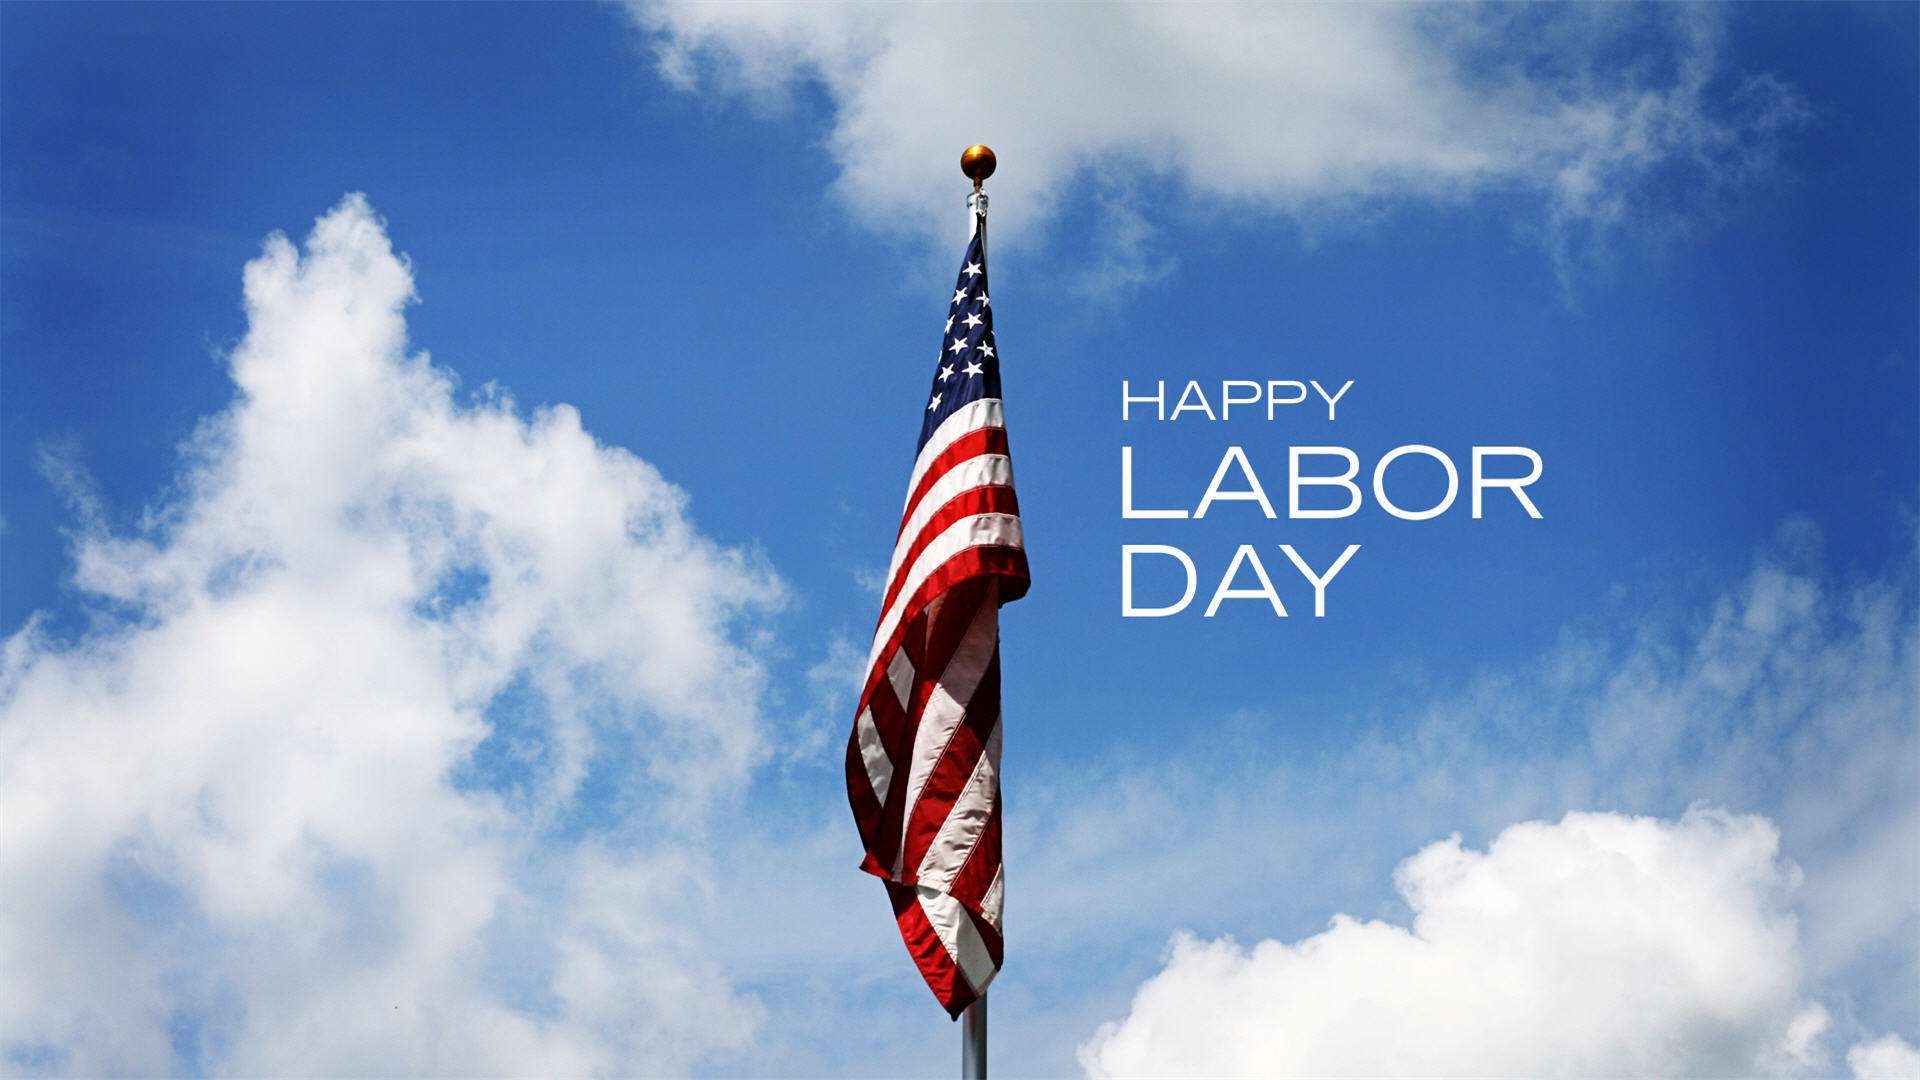 Labor Day Wallpapers Hd